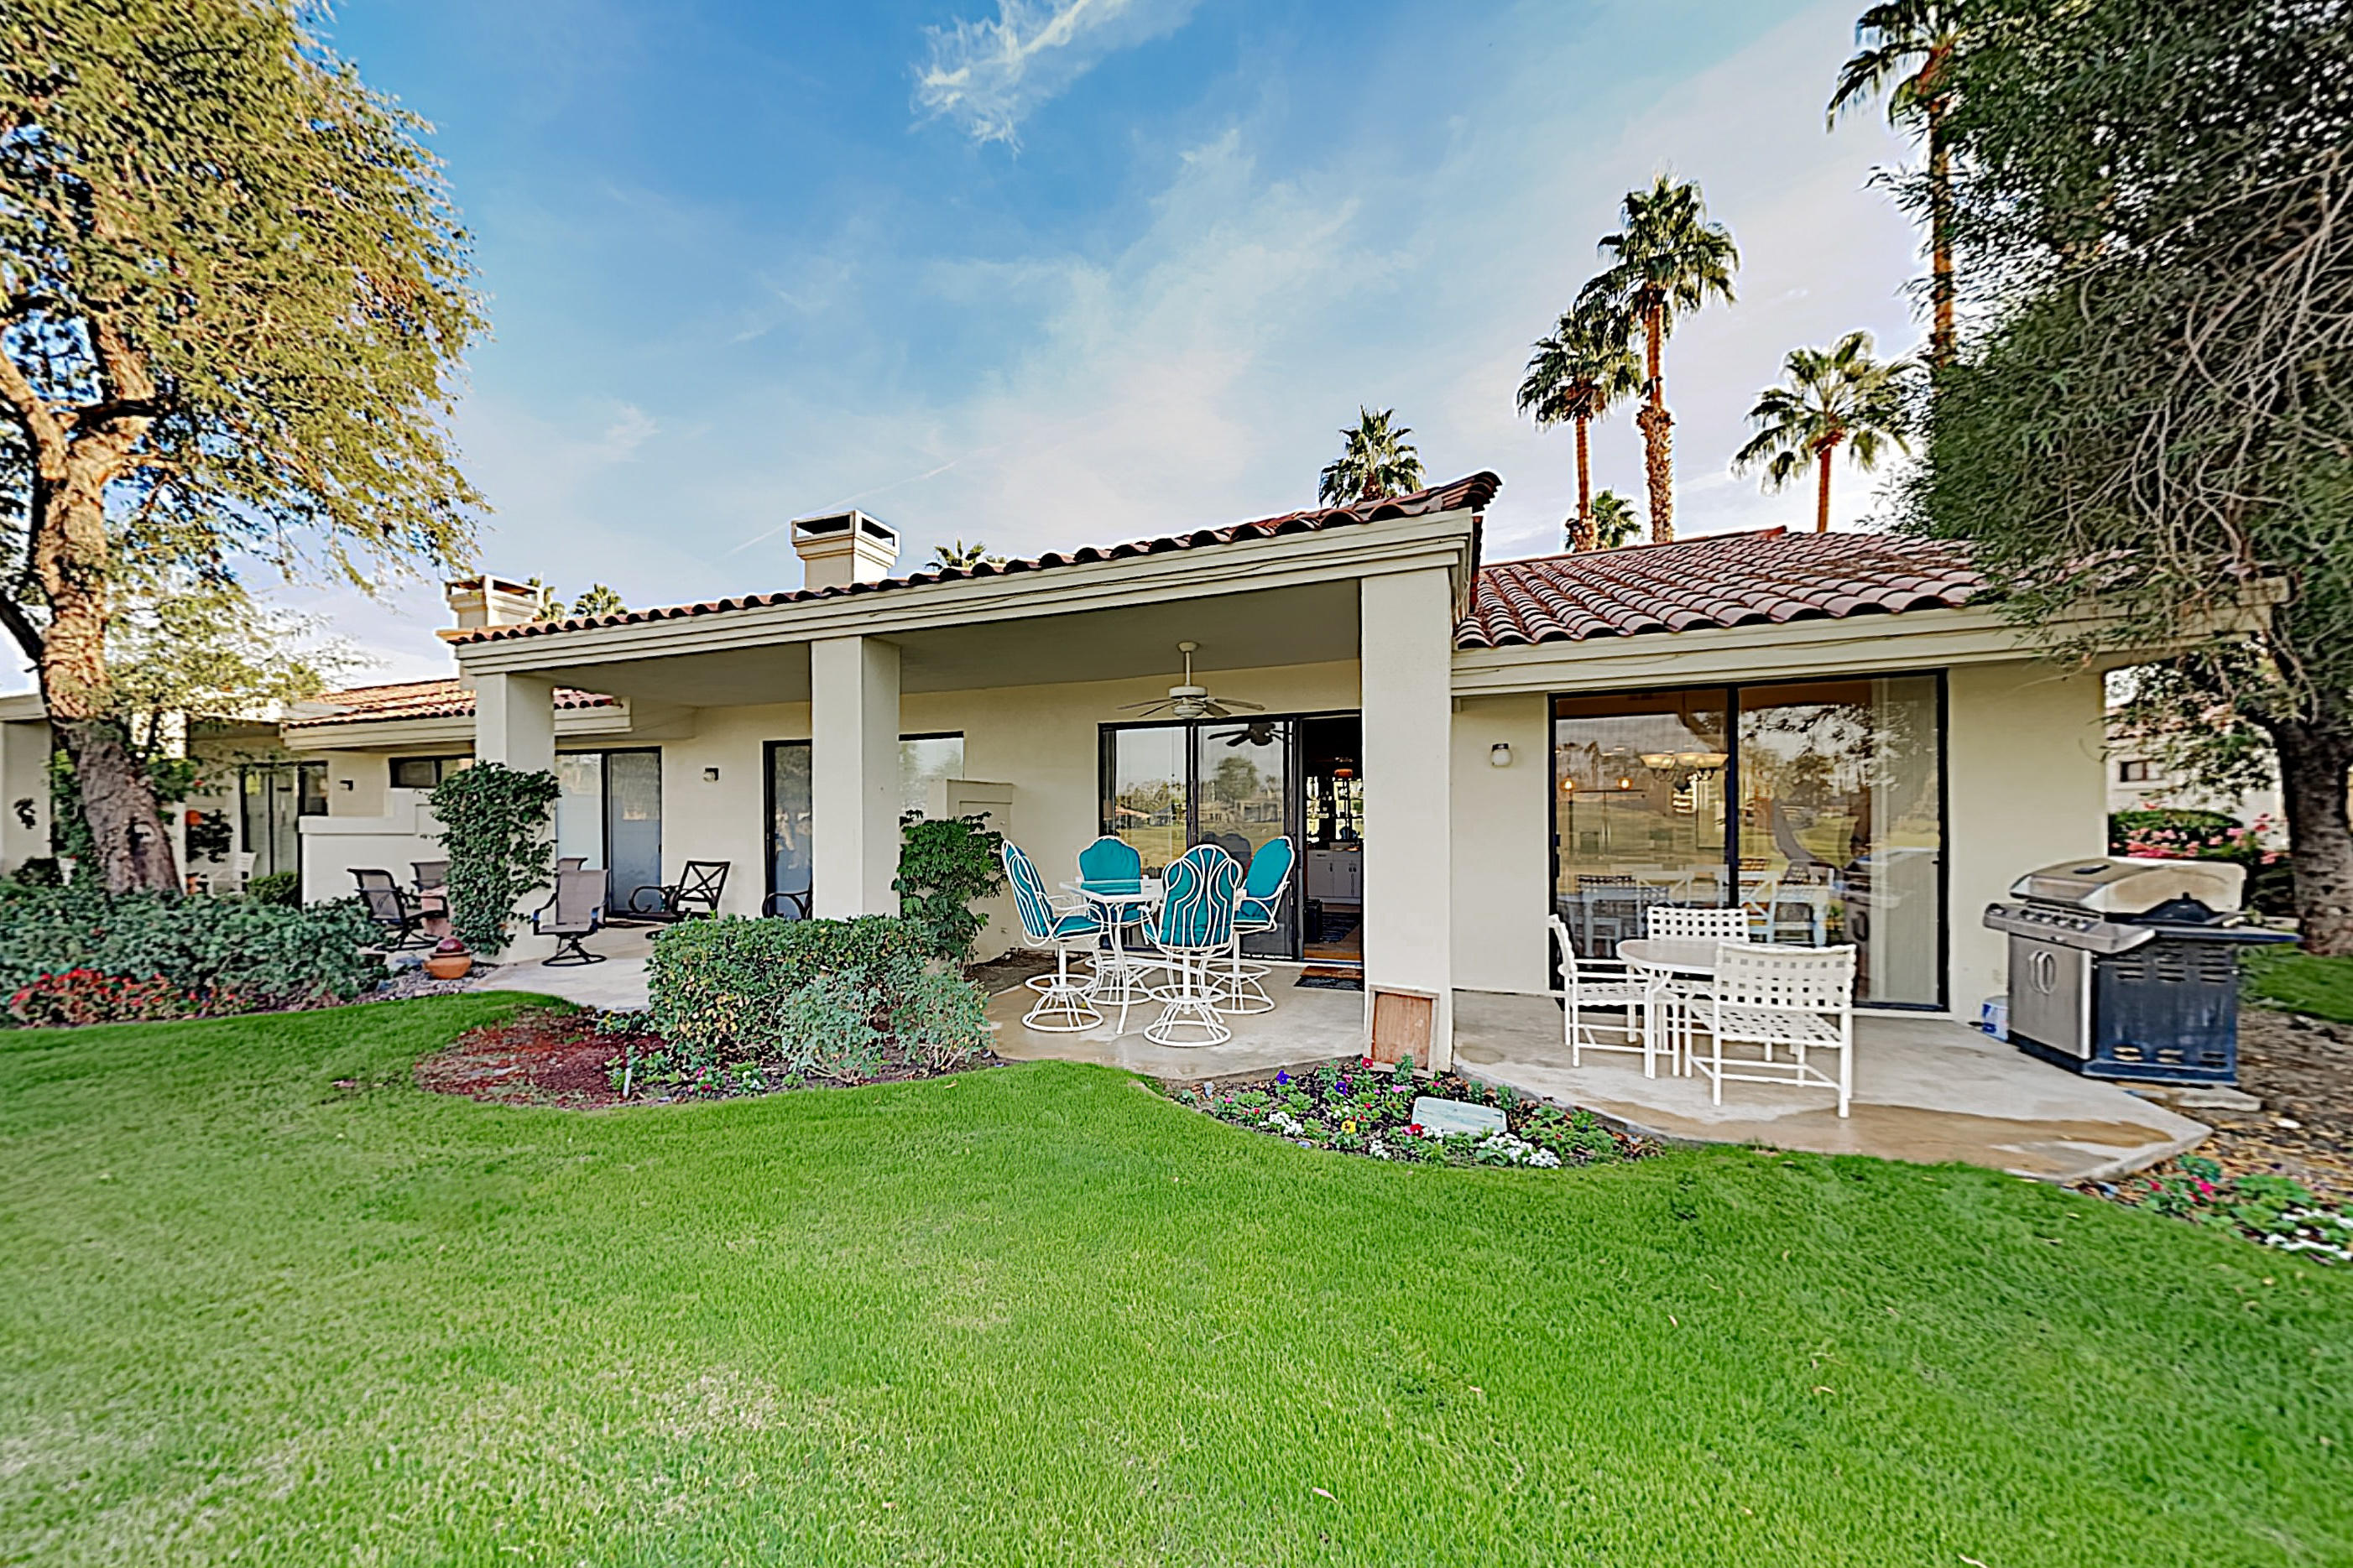 Beautifully remodeled Champion 3 floor plan with stunning Golf Course and Mountain Views! Located just off the tee boxes of the #15 hole of the World famous Stadium Golf Course at PGA West, Home of the American Express PGA Golf Tournament every January. This End Unit Condo has a tastefully remodeled kitchen, flooring, baths, and is ideally located near a Community Pool and Spa. Enjoy cozy bright mornings and peaceful evenings on your large covered rear Patio. Inside, the spacious 1,627 SqFt layout features 3 Bedrooms and 2 Bathrooms, a kitchen that has been upgraded with Granite Countertops and Stainless Steel Appliances. You'll have plenty of space to entertain in the Open Living and Dining Area which features a Wet Bar, Vaulted Ceilings, Fireplace, and views to the back patio on tp the Golf Course.The Master Retreat has double vanities, walk in shower, plenty of closet space, and a Private Courtyard. HOA's include maintenance on building and grounds, all landscaping in front, back, side, and courtyards, irrigation water and equipment, exterior paint, roof, earthquake insurance, cable, internet, trash, and 24 hour guarded gate and security. Offered Turnkey Furnished per Written Inventory